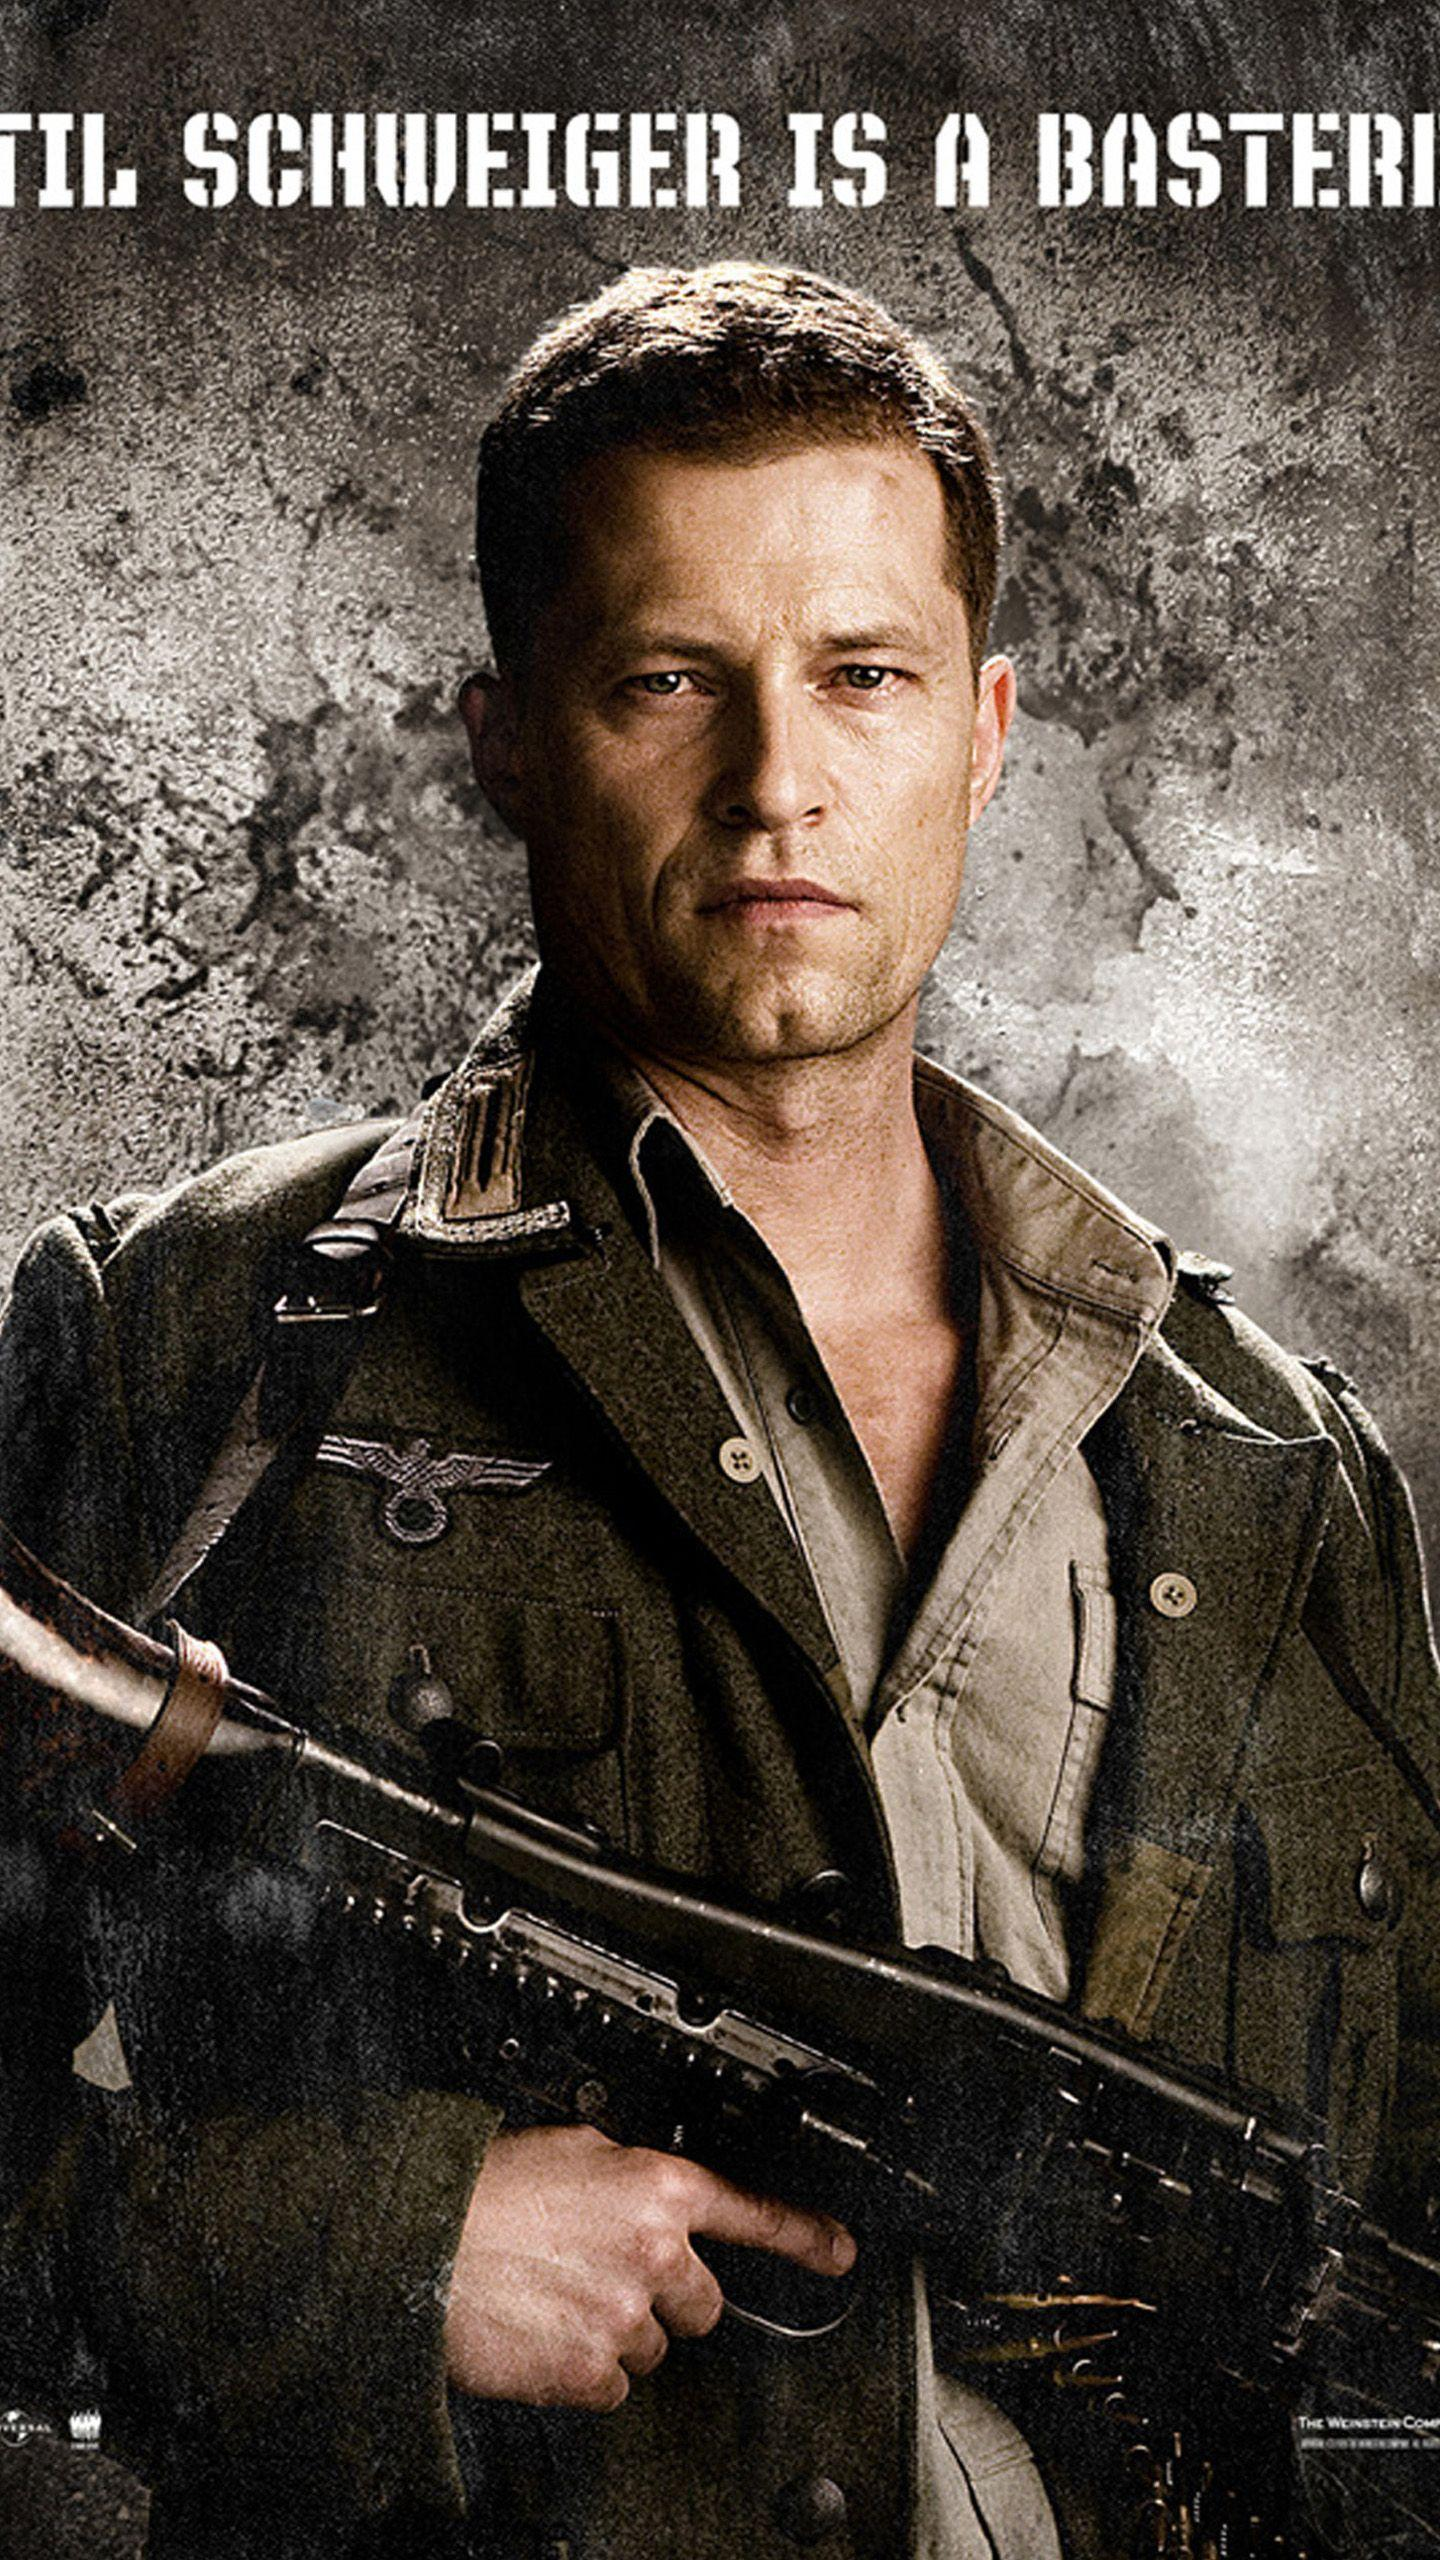 inglourious basterds til schweiger LG G3 Wallpapers